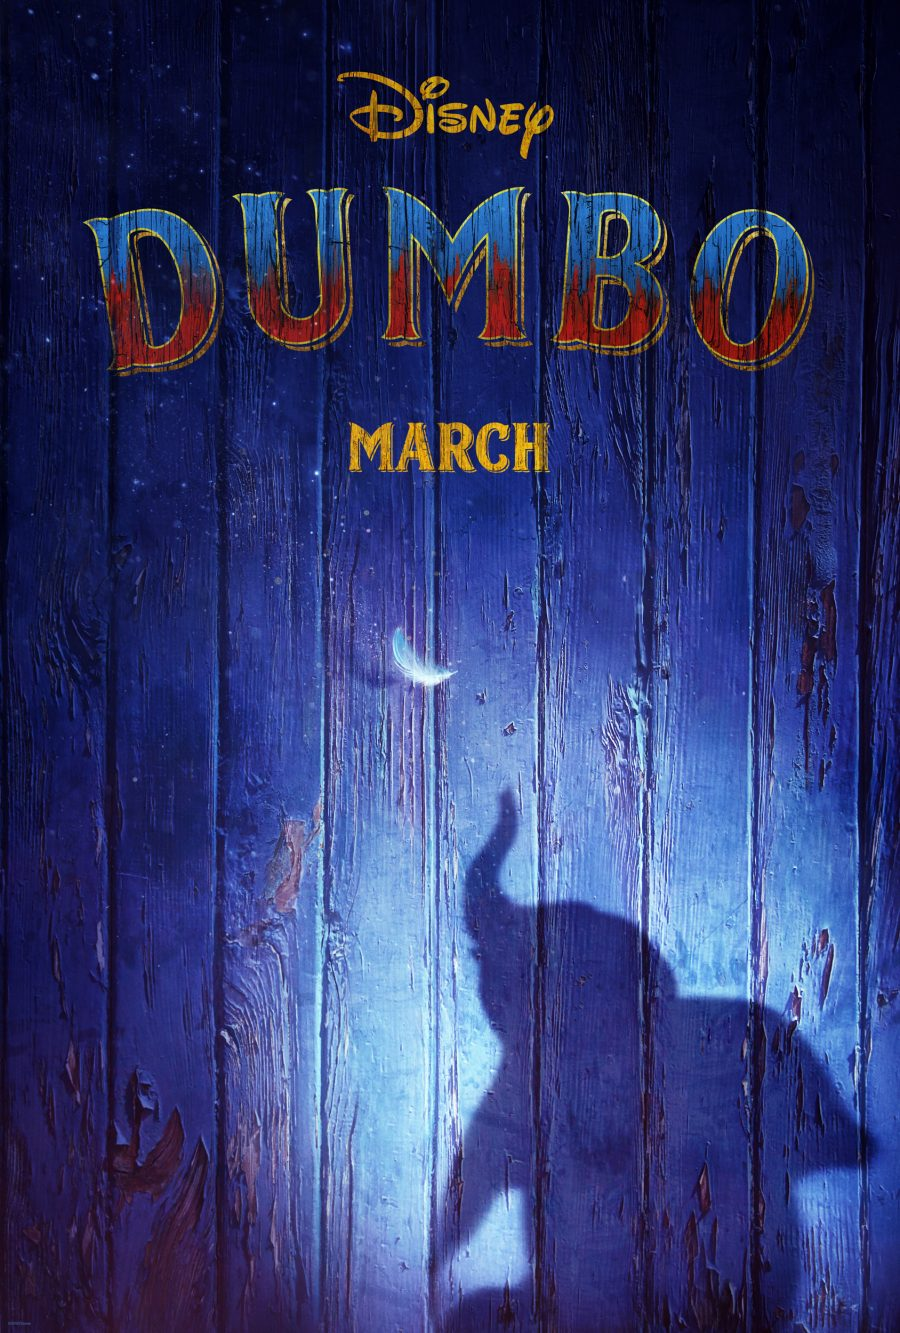 Disney Live Action Dumbo Teaser Poster